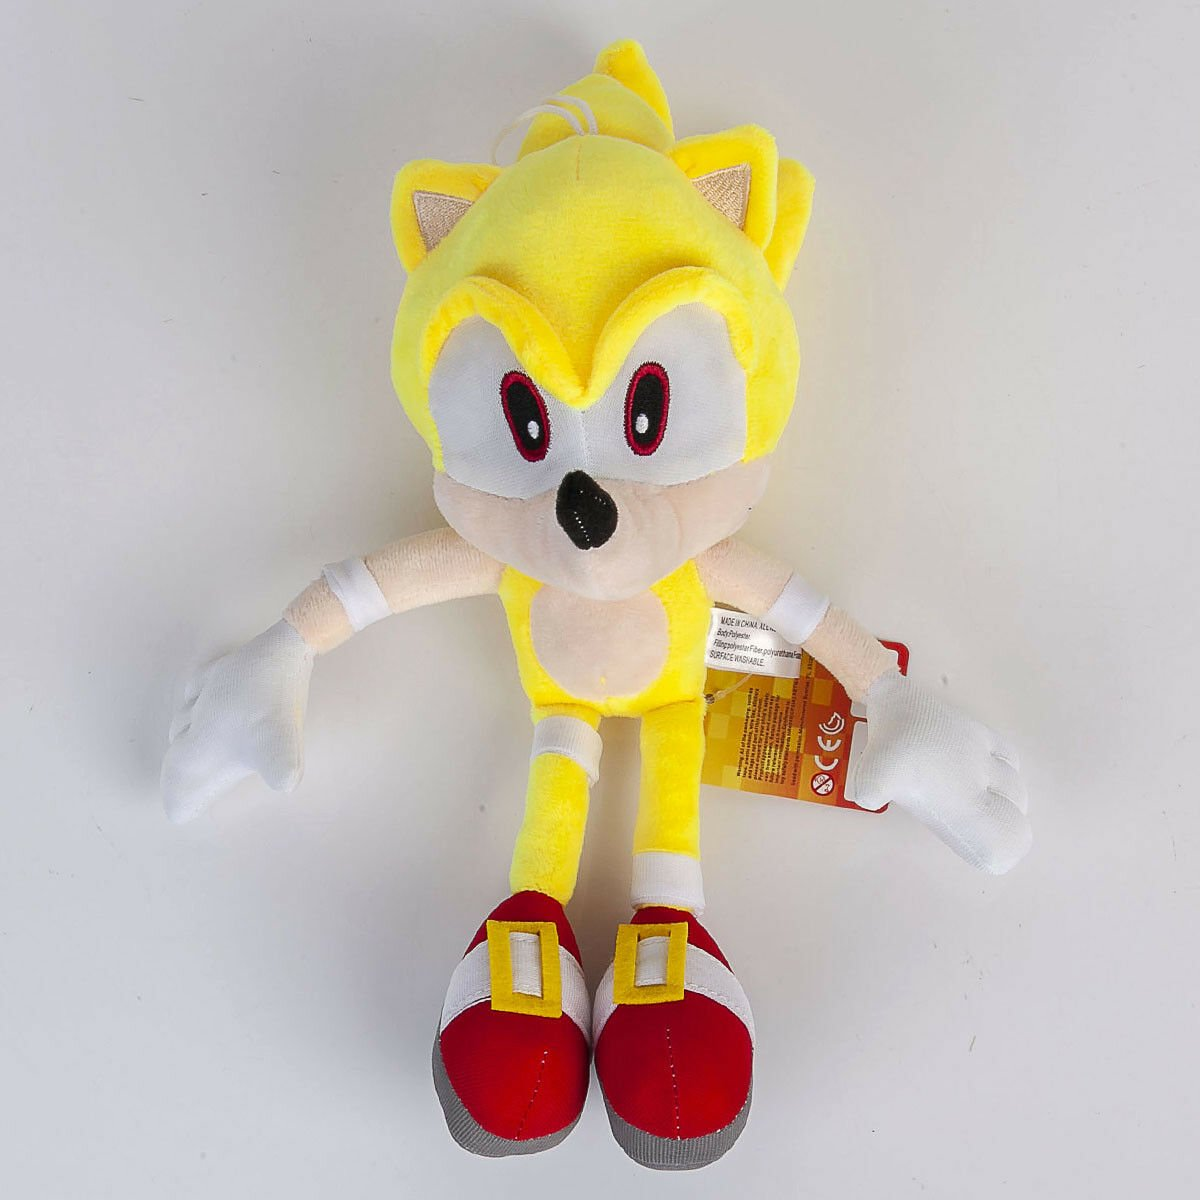 Patmac On Twitter Recently New Bootlegs Based Off The Ge Sonic Plushes Have Started Showing Up First They Faked Werehog And Blaze But Now We Have An Actual Bootleg Super Sonic Plush